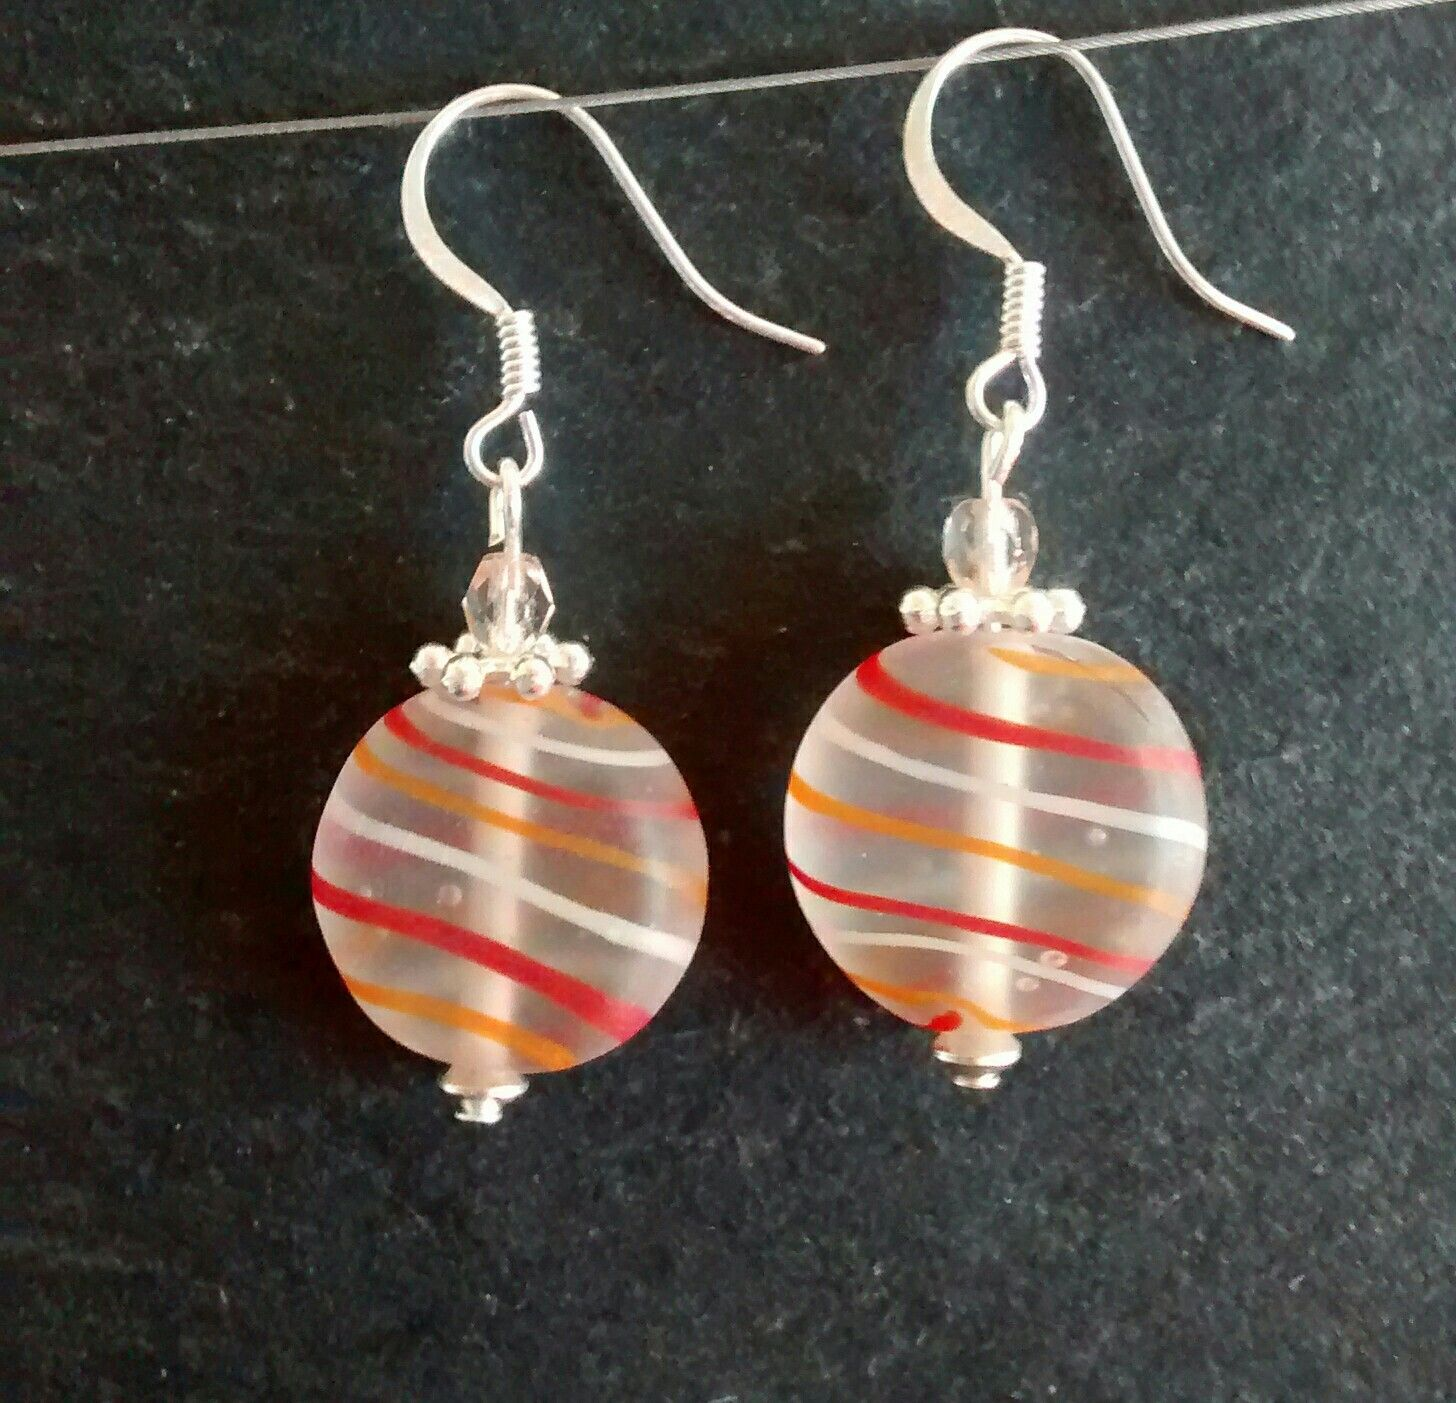 O Sweetie Drop Earrings Handmade Earring Handarbeit Hand Made